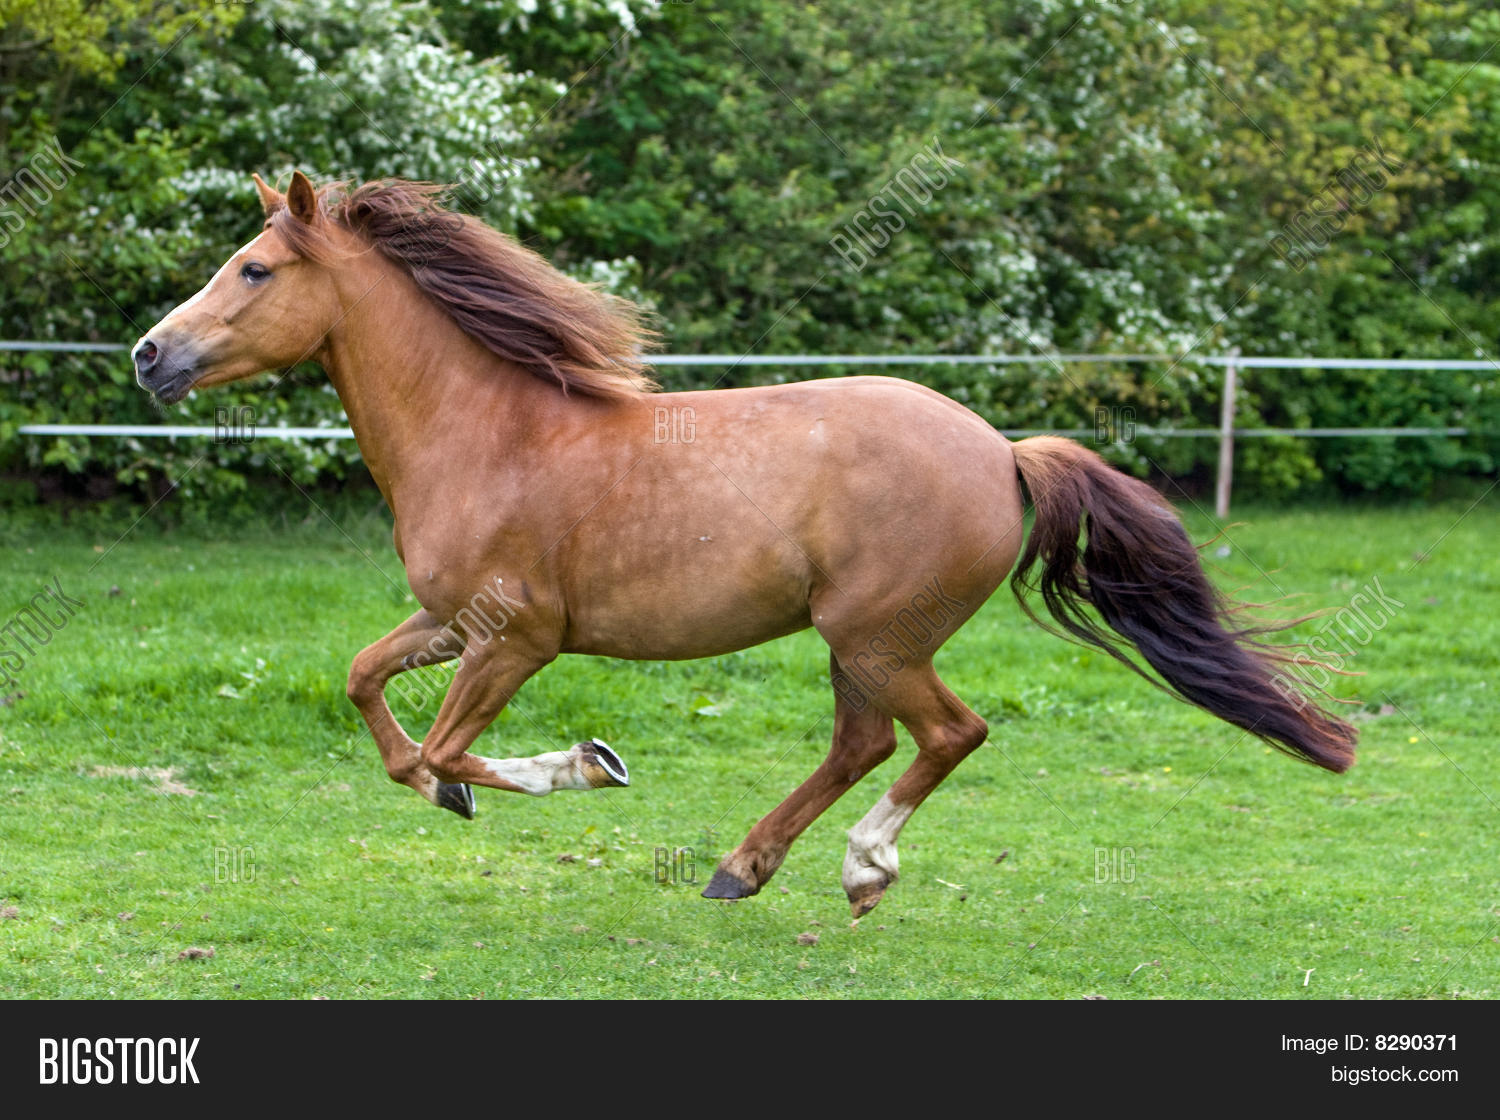 Beautiful Horse Running Image Stock Photo 8290371